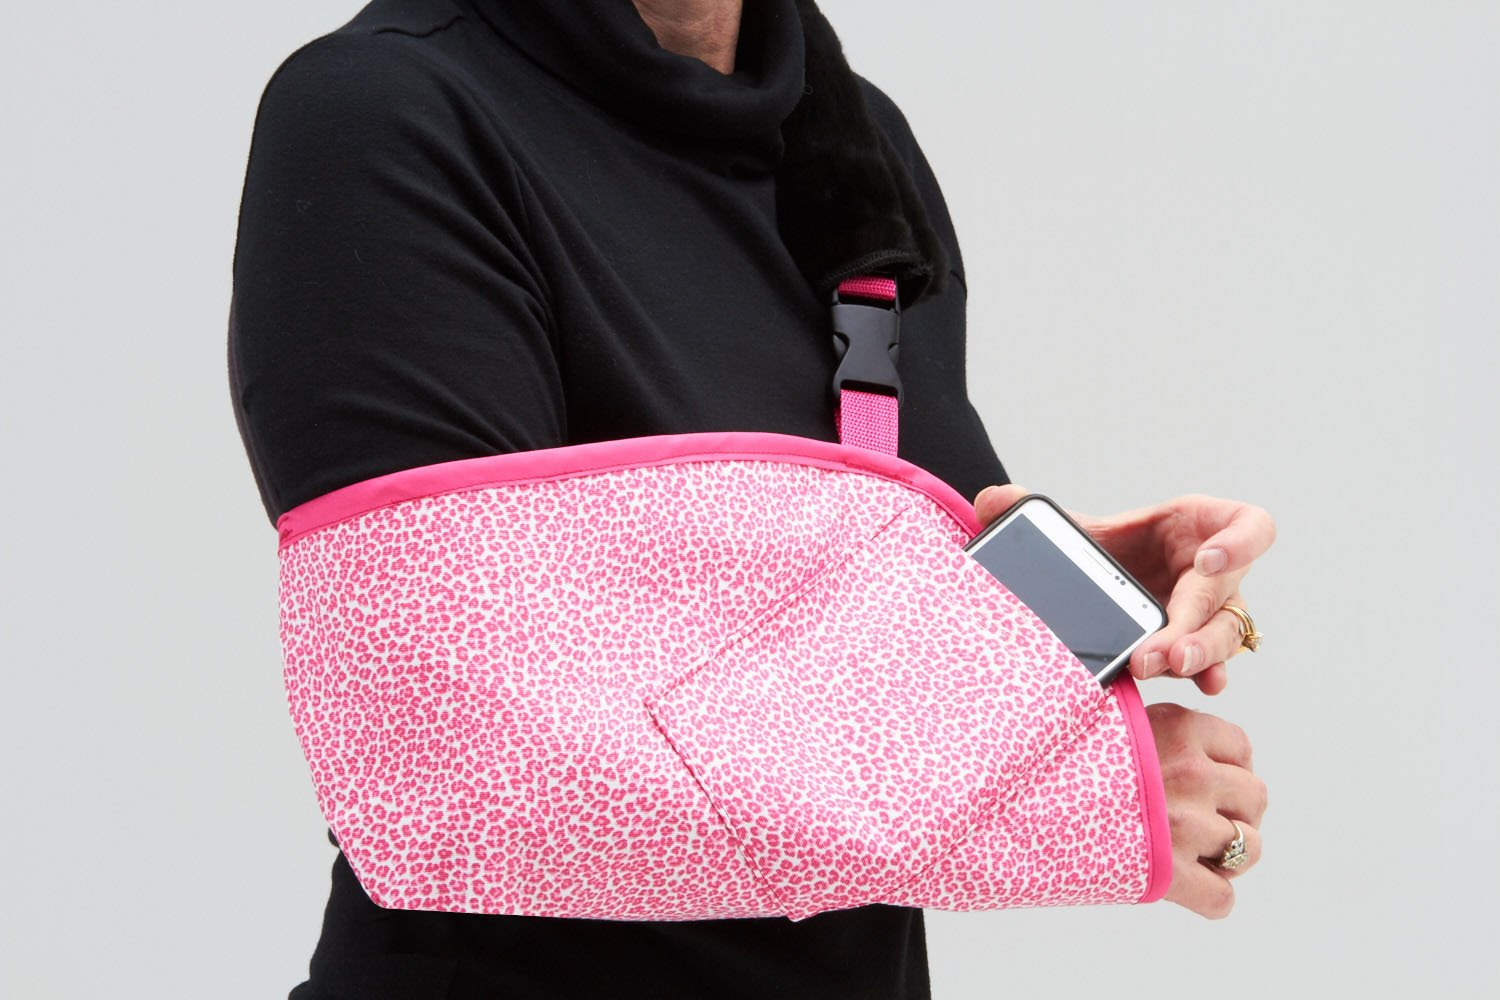 CastCoverz! Slingz! Designer Arm Sling in Seeing Spots Pink - Large Left Arm with Berry Pink Trim and Cell Phone Pocket by CastCoverz!